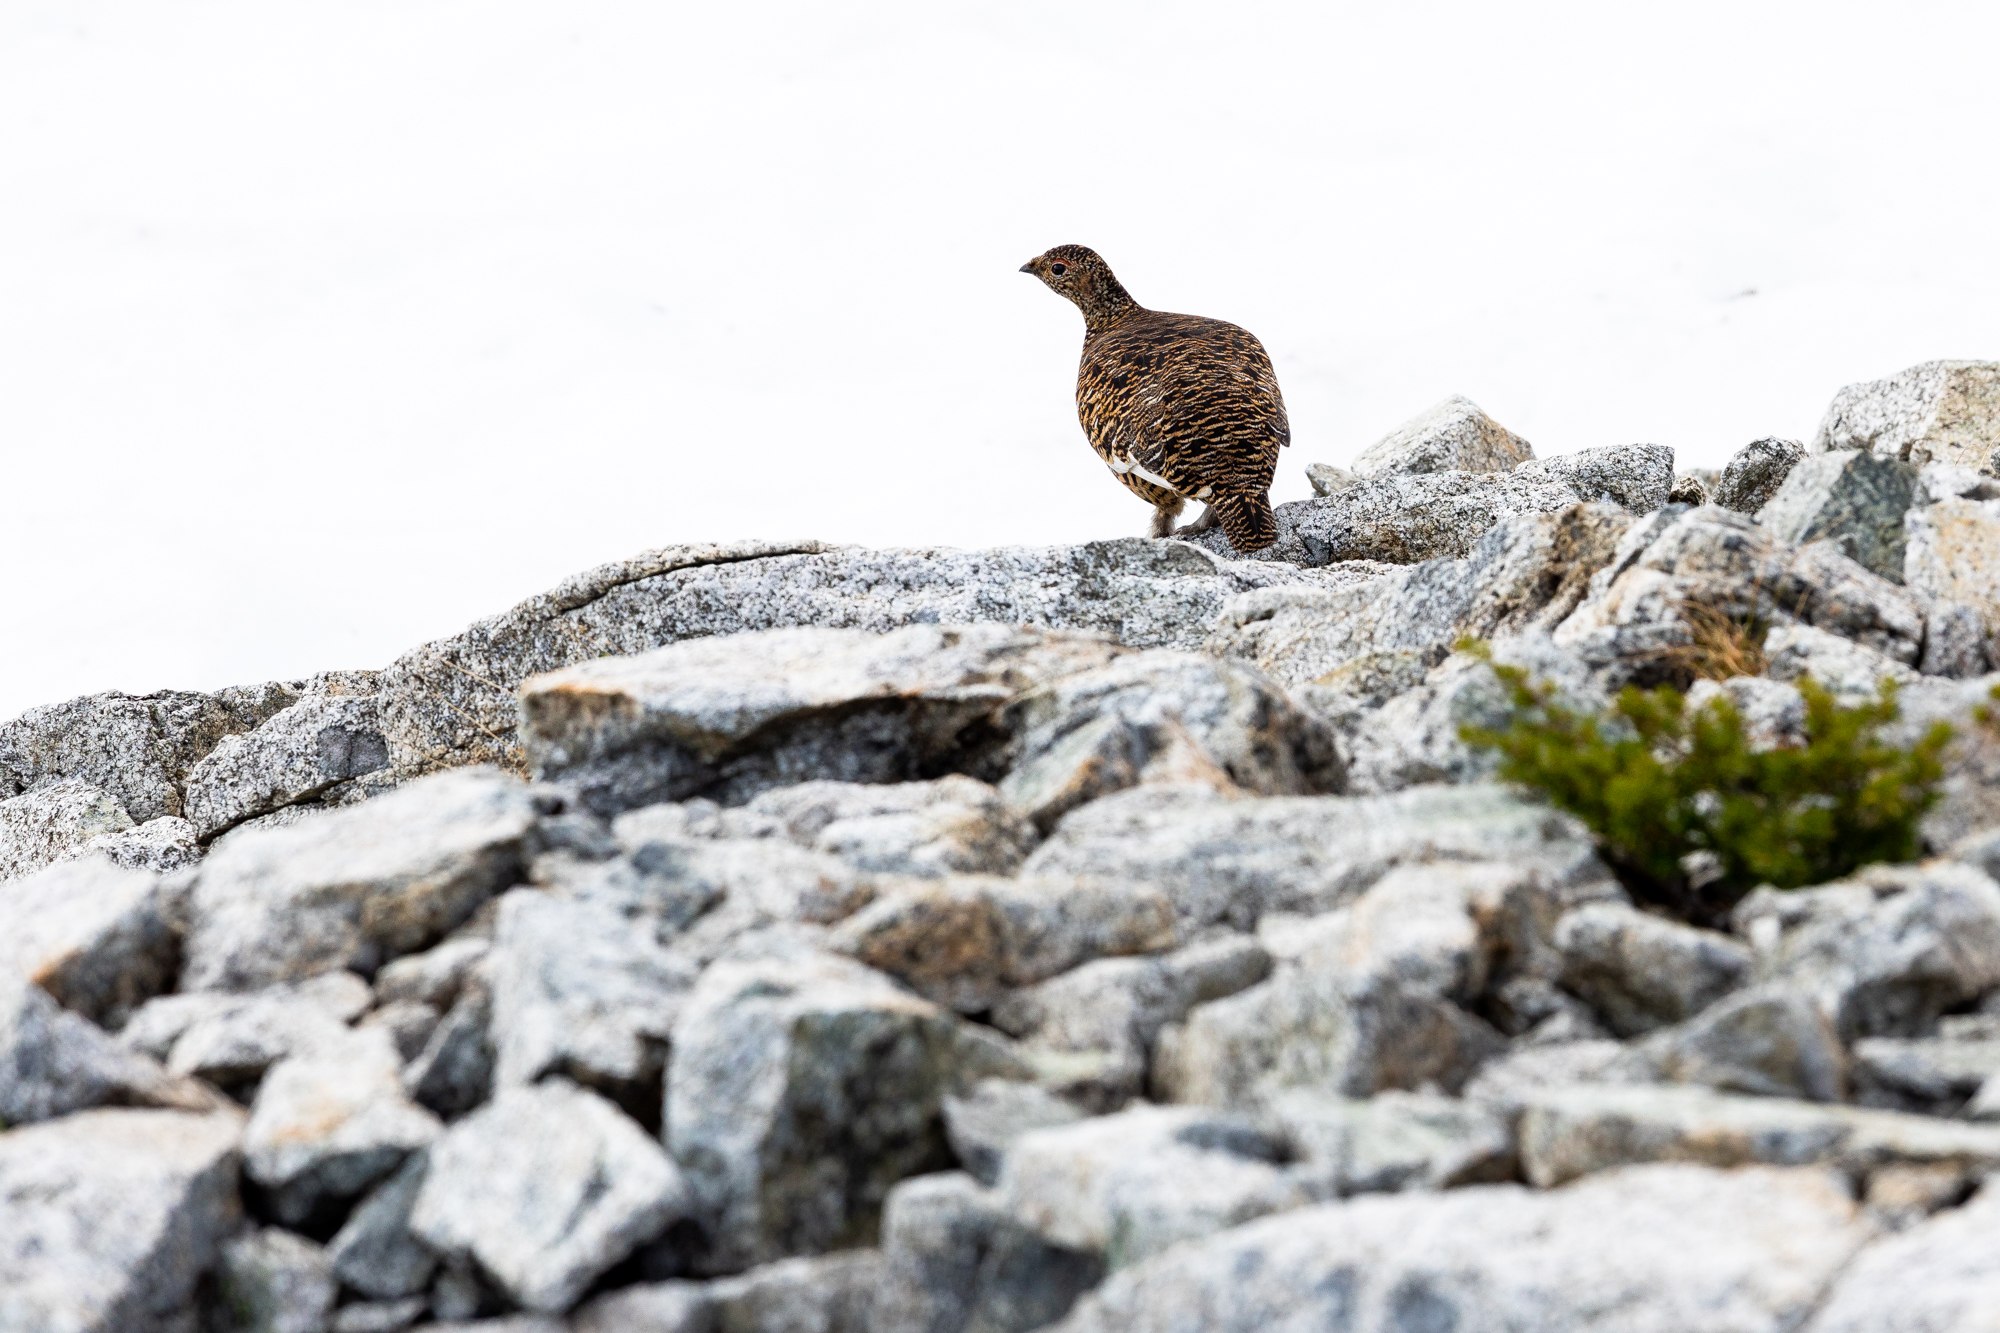 We came upon a grouse with a lot of little ones.